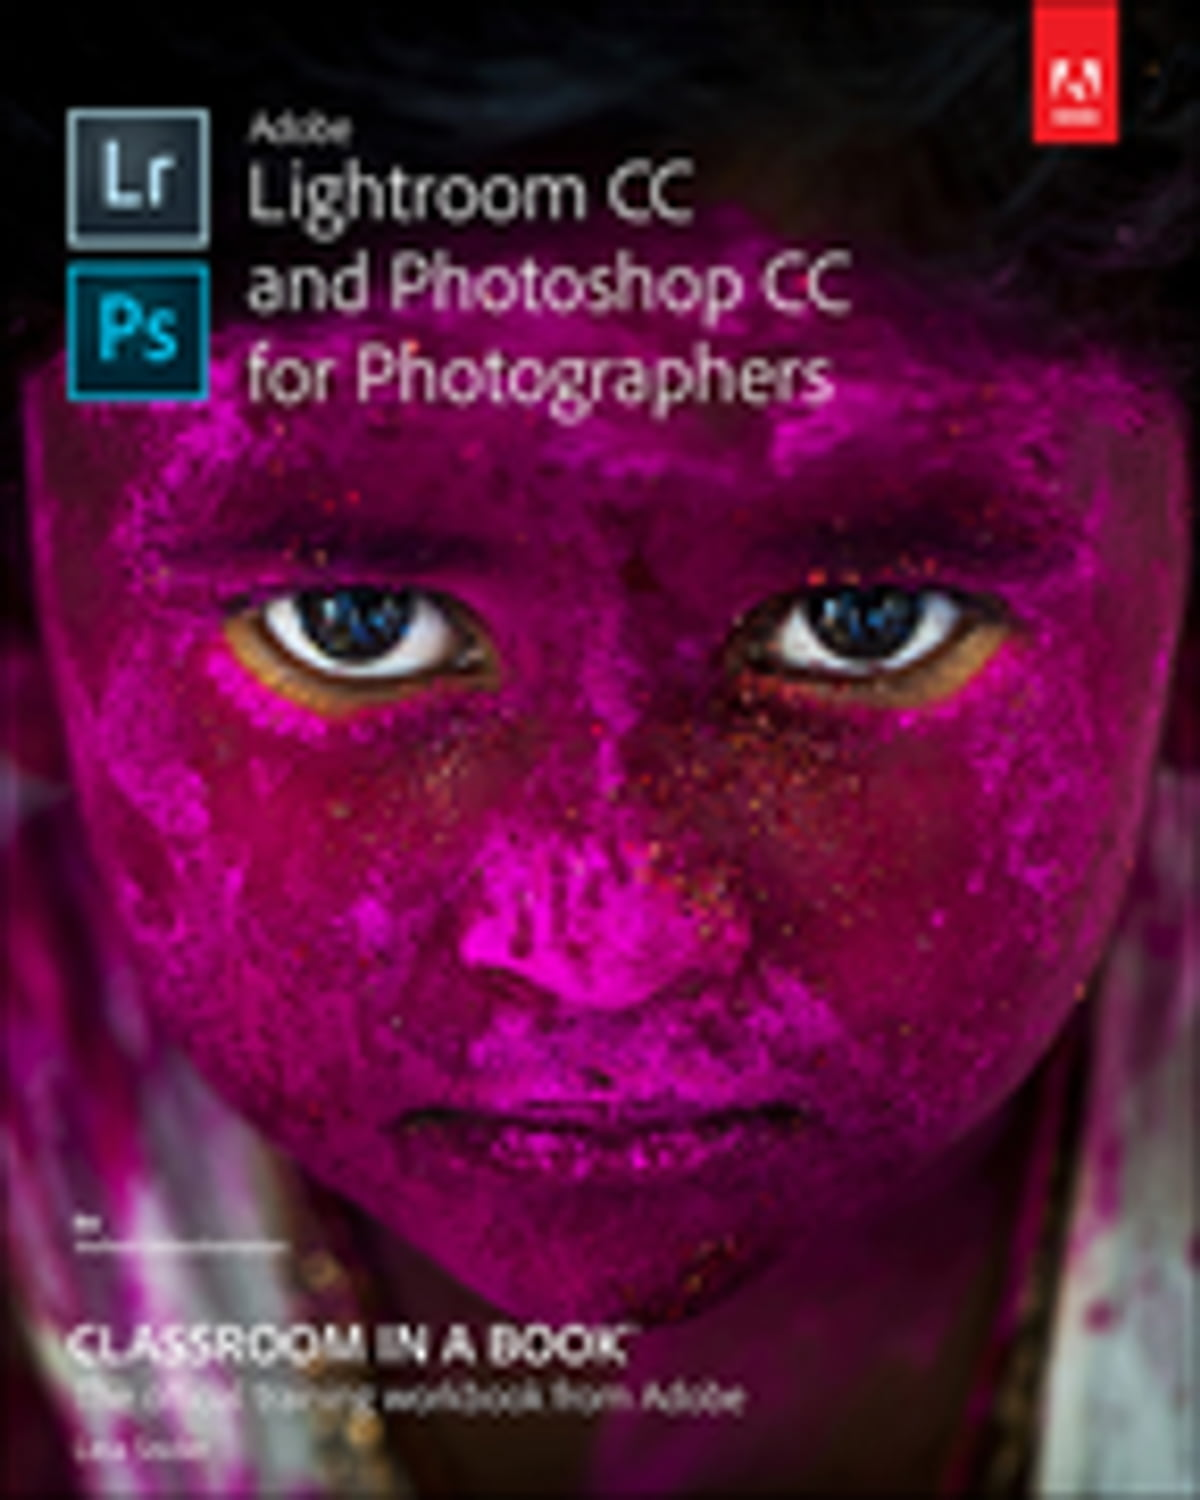 Adobe Lightroom CC and Photoshop CC for Photographers Classroom in a Book  eBook by Lesa Snider - 9780134288680 | Rakuten Kobo